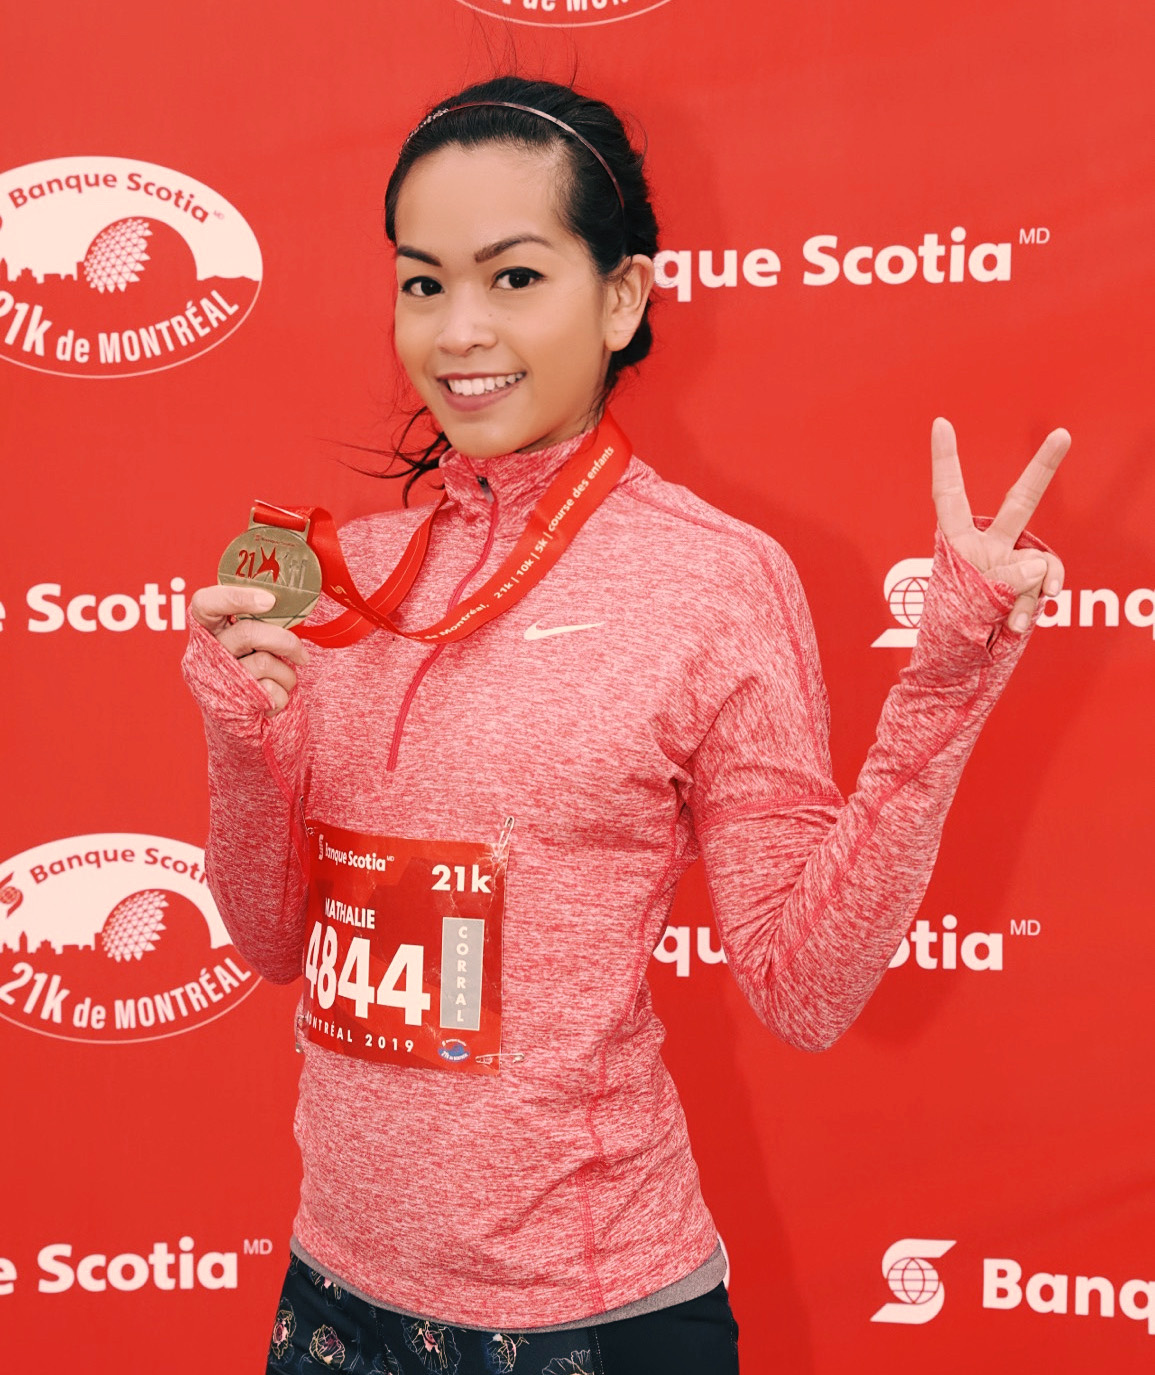 Demi-Marathon Banque Scotia 21K Montréal Nath and you